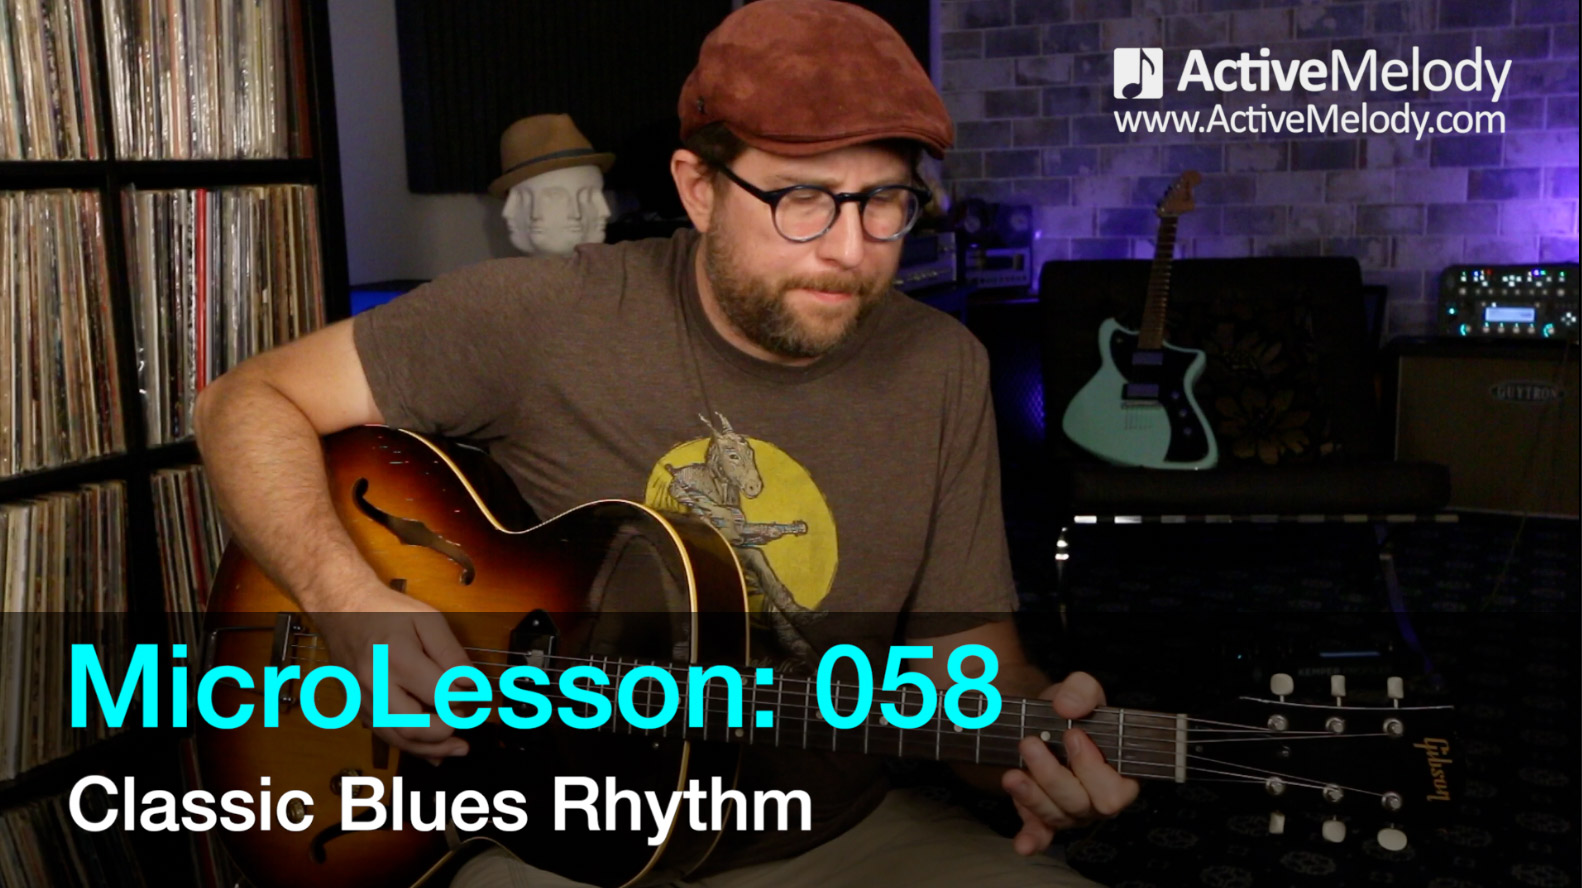 MicroLesson: 058 – Classic Blues Rhythm Guitar Lesson (can be played in any key)